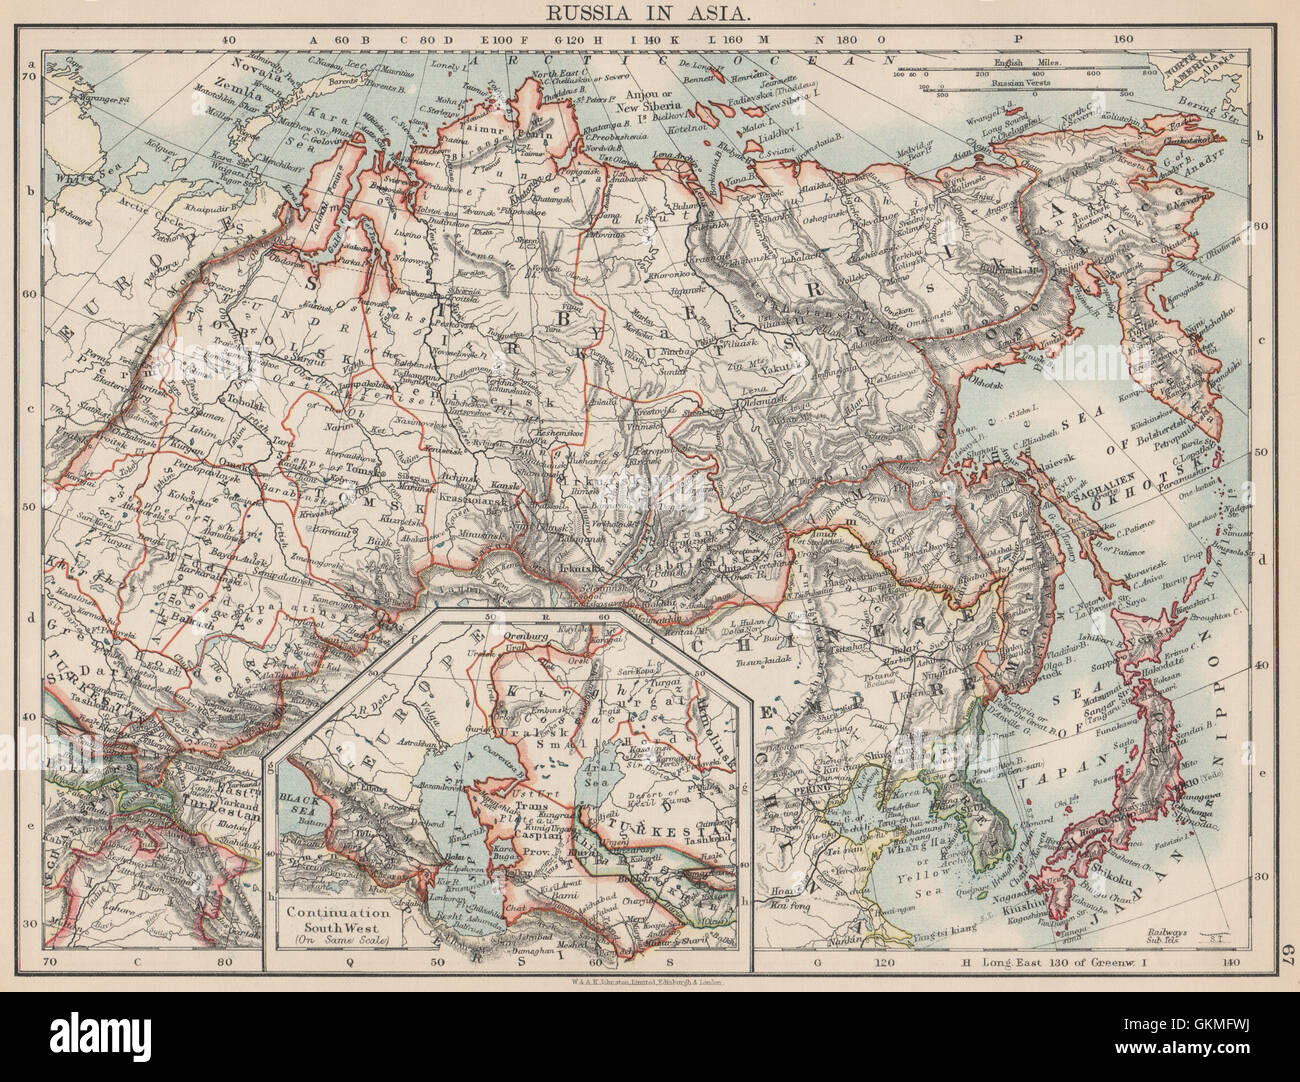 Russia in asia shows trans siberian railway under construction russia in asia shows trans siberian railway under construction 1903 old map sciox Images